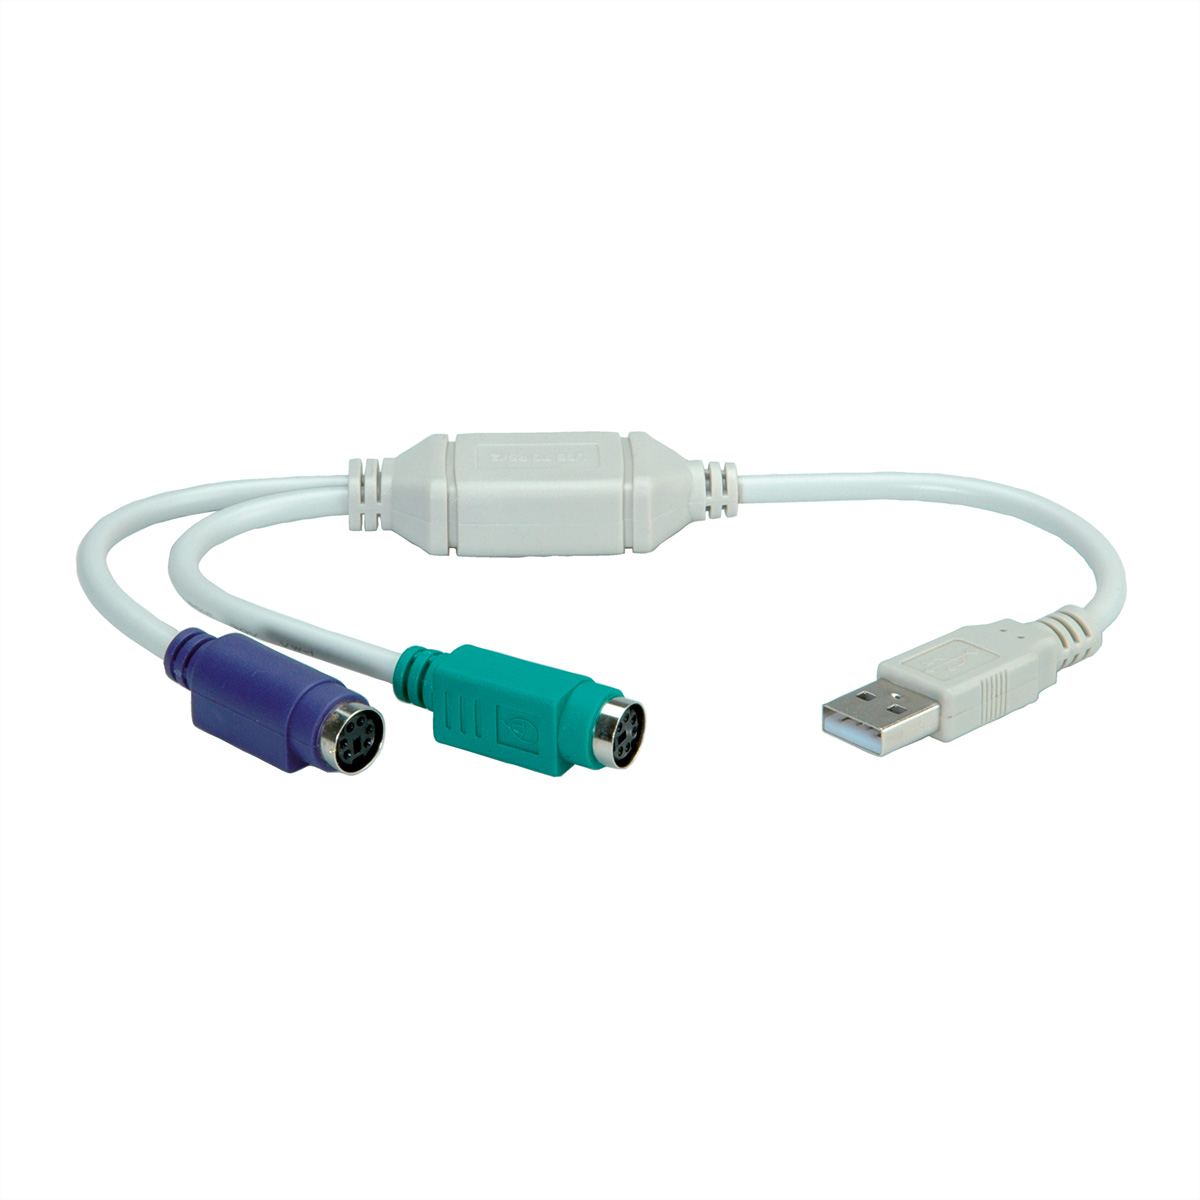 VALUE USB - 2x PS/2 Konverter